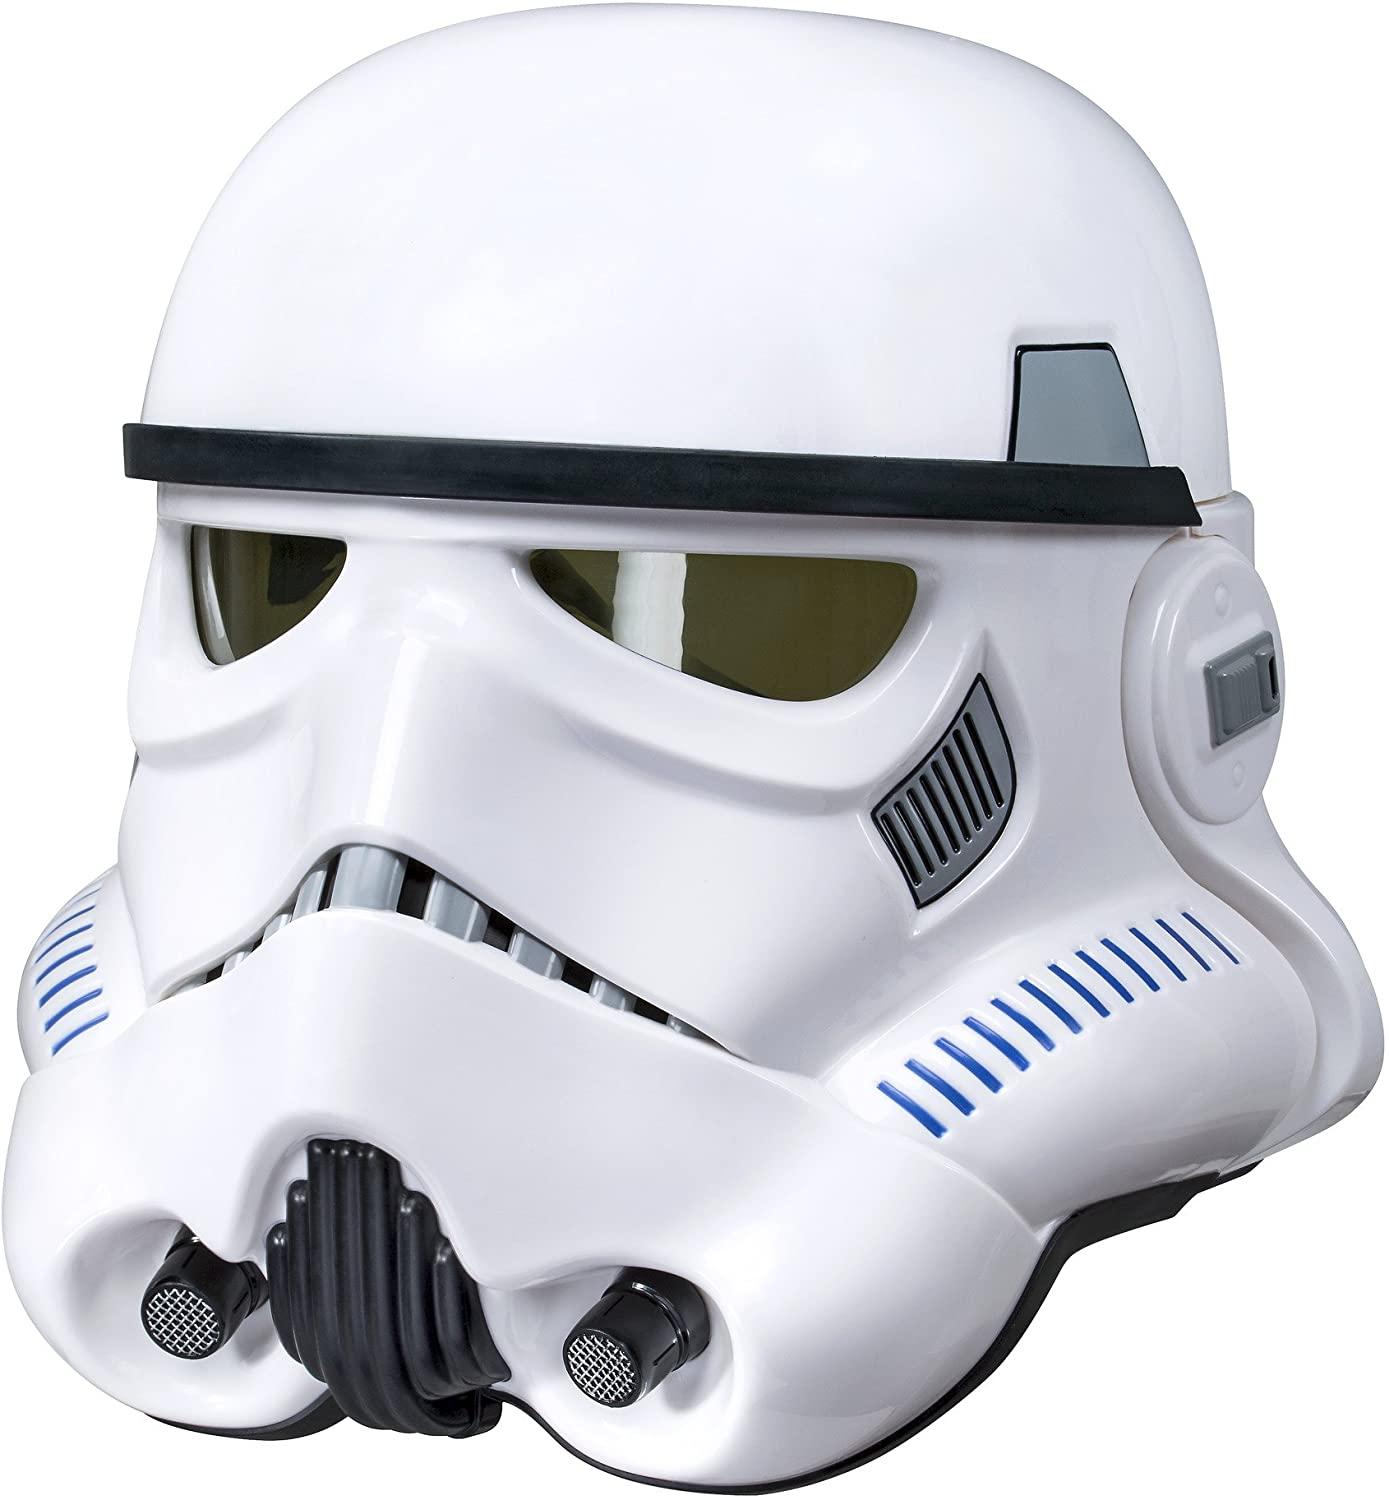 Amazon Com Star Wars B7097 Imperial Stormtrooper Electronic Voice Changer Helmet Amazon Exclusive Toys Games